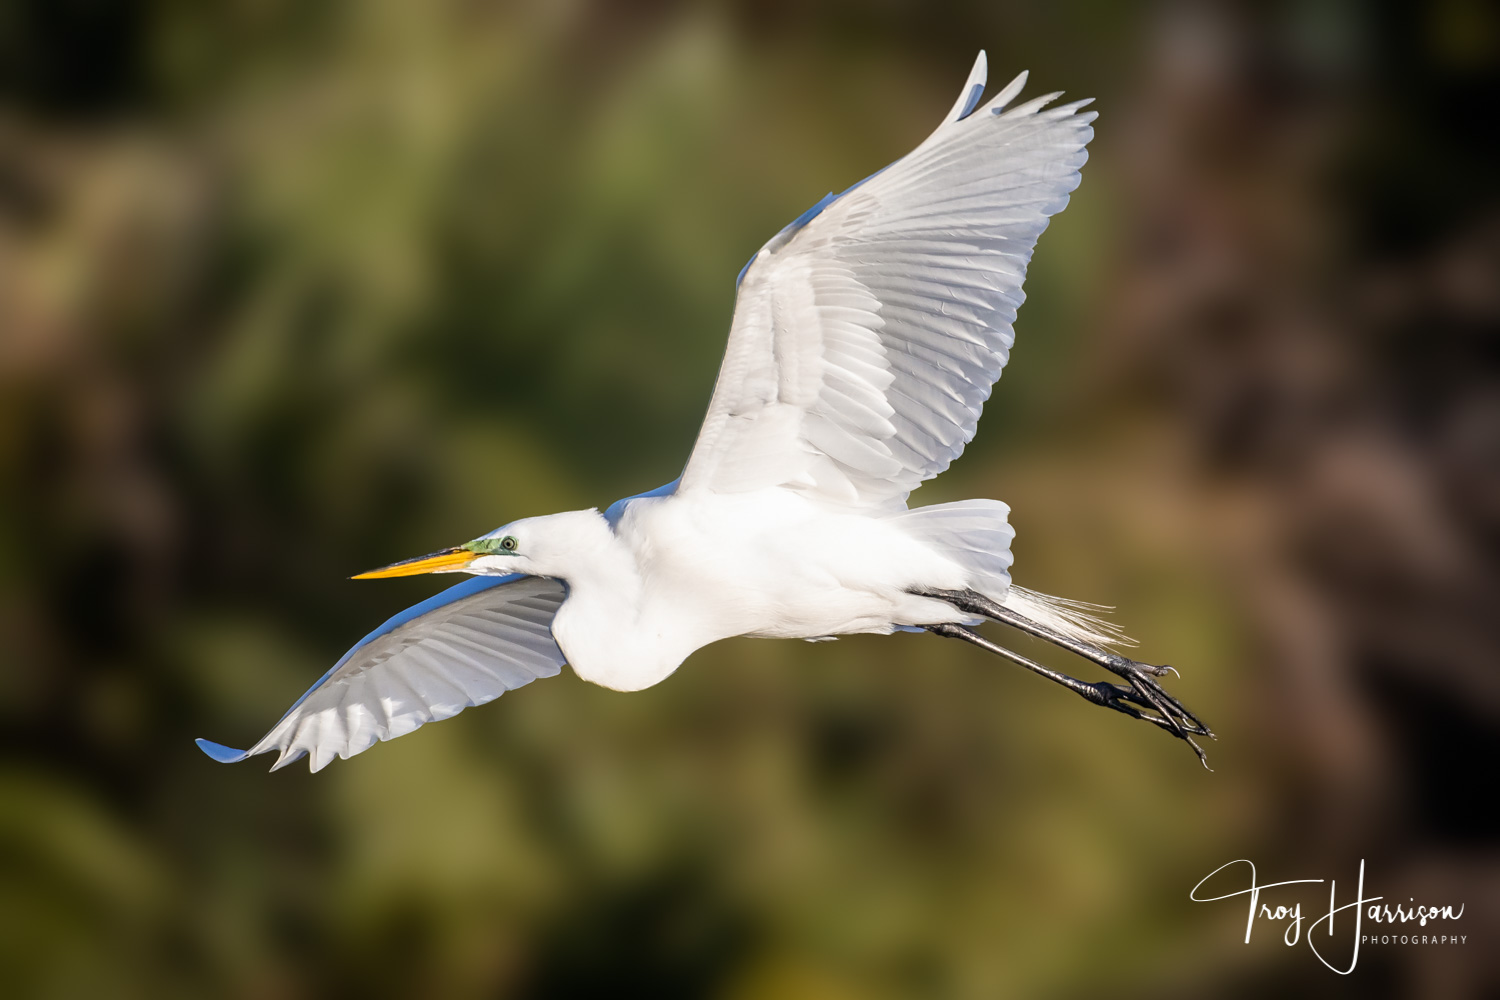 1 - Great Egret, Everglades, Jan. 2019, img 2550.jpg